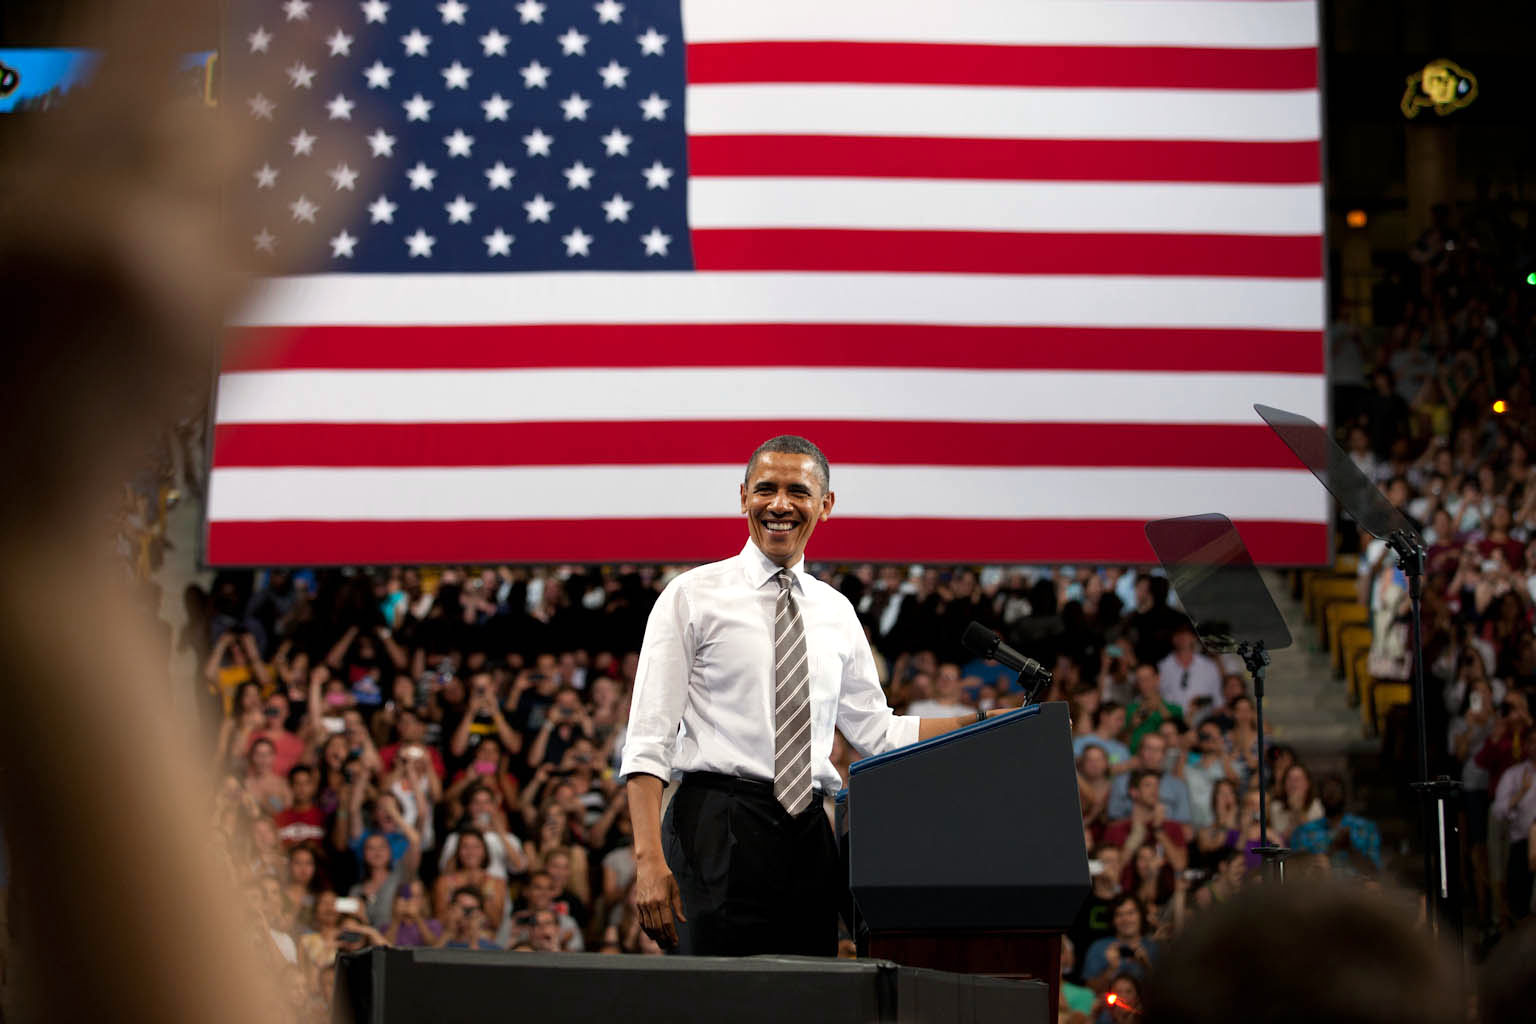 President Obama at the University of Colorado Coors Event Center